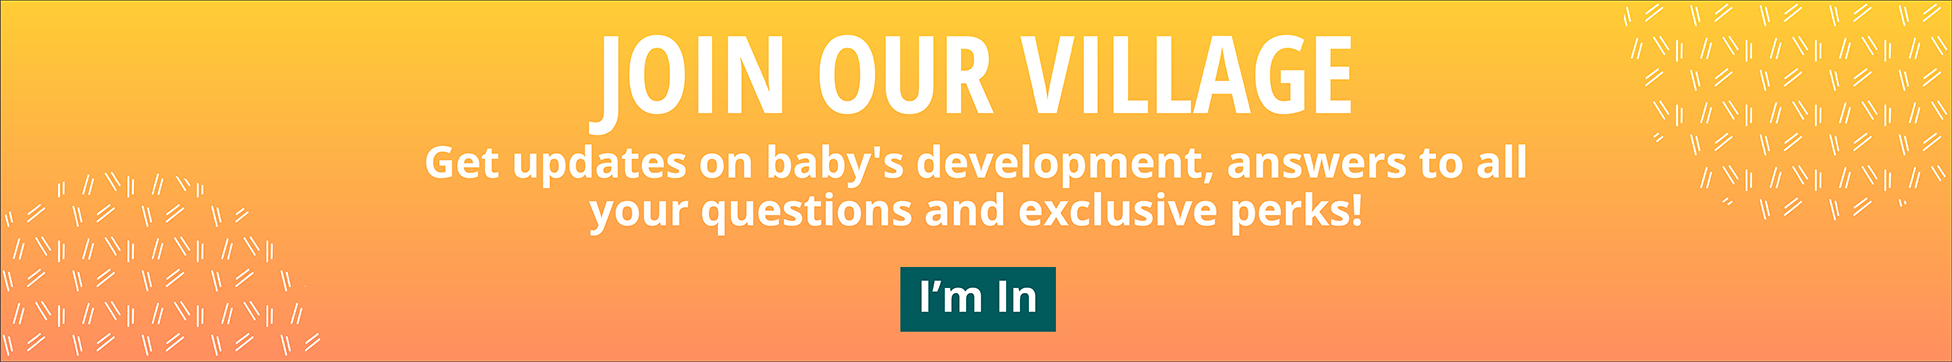 Follow us on Facebook to stay updated on the latest pregnancy and parenting news.